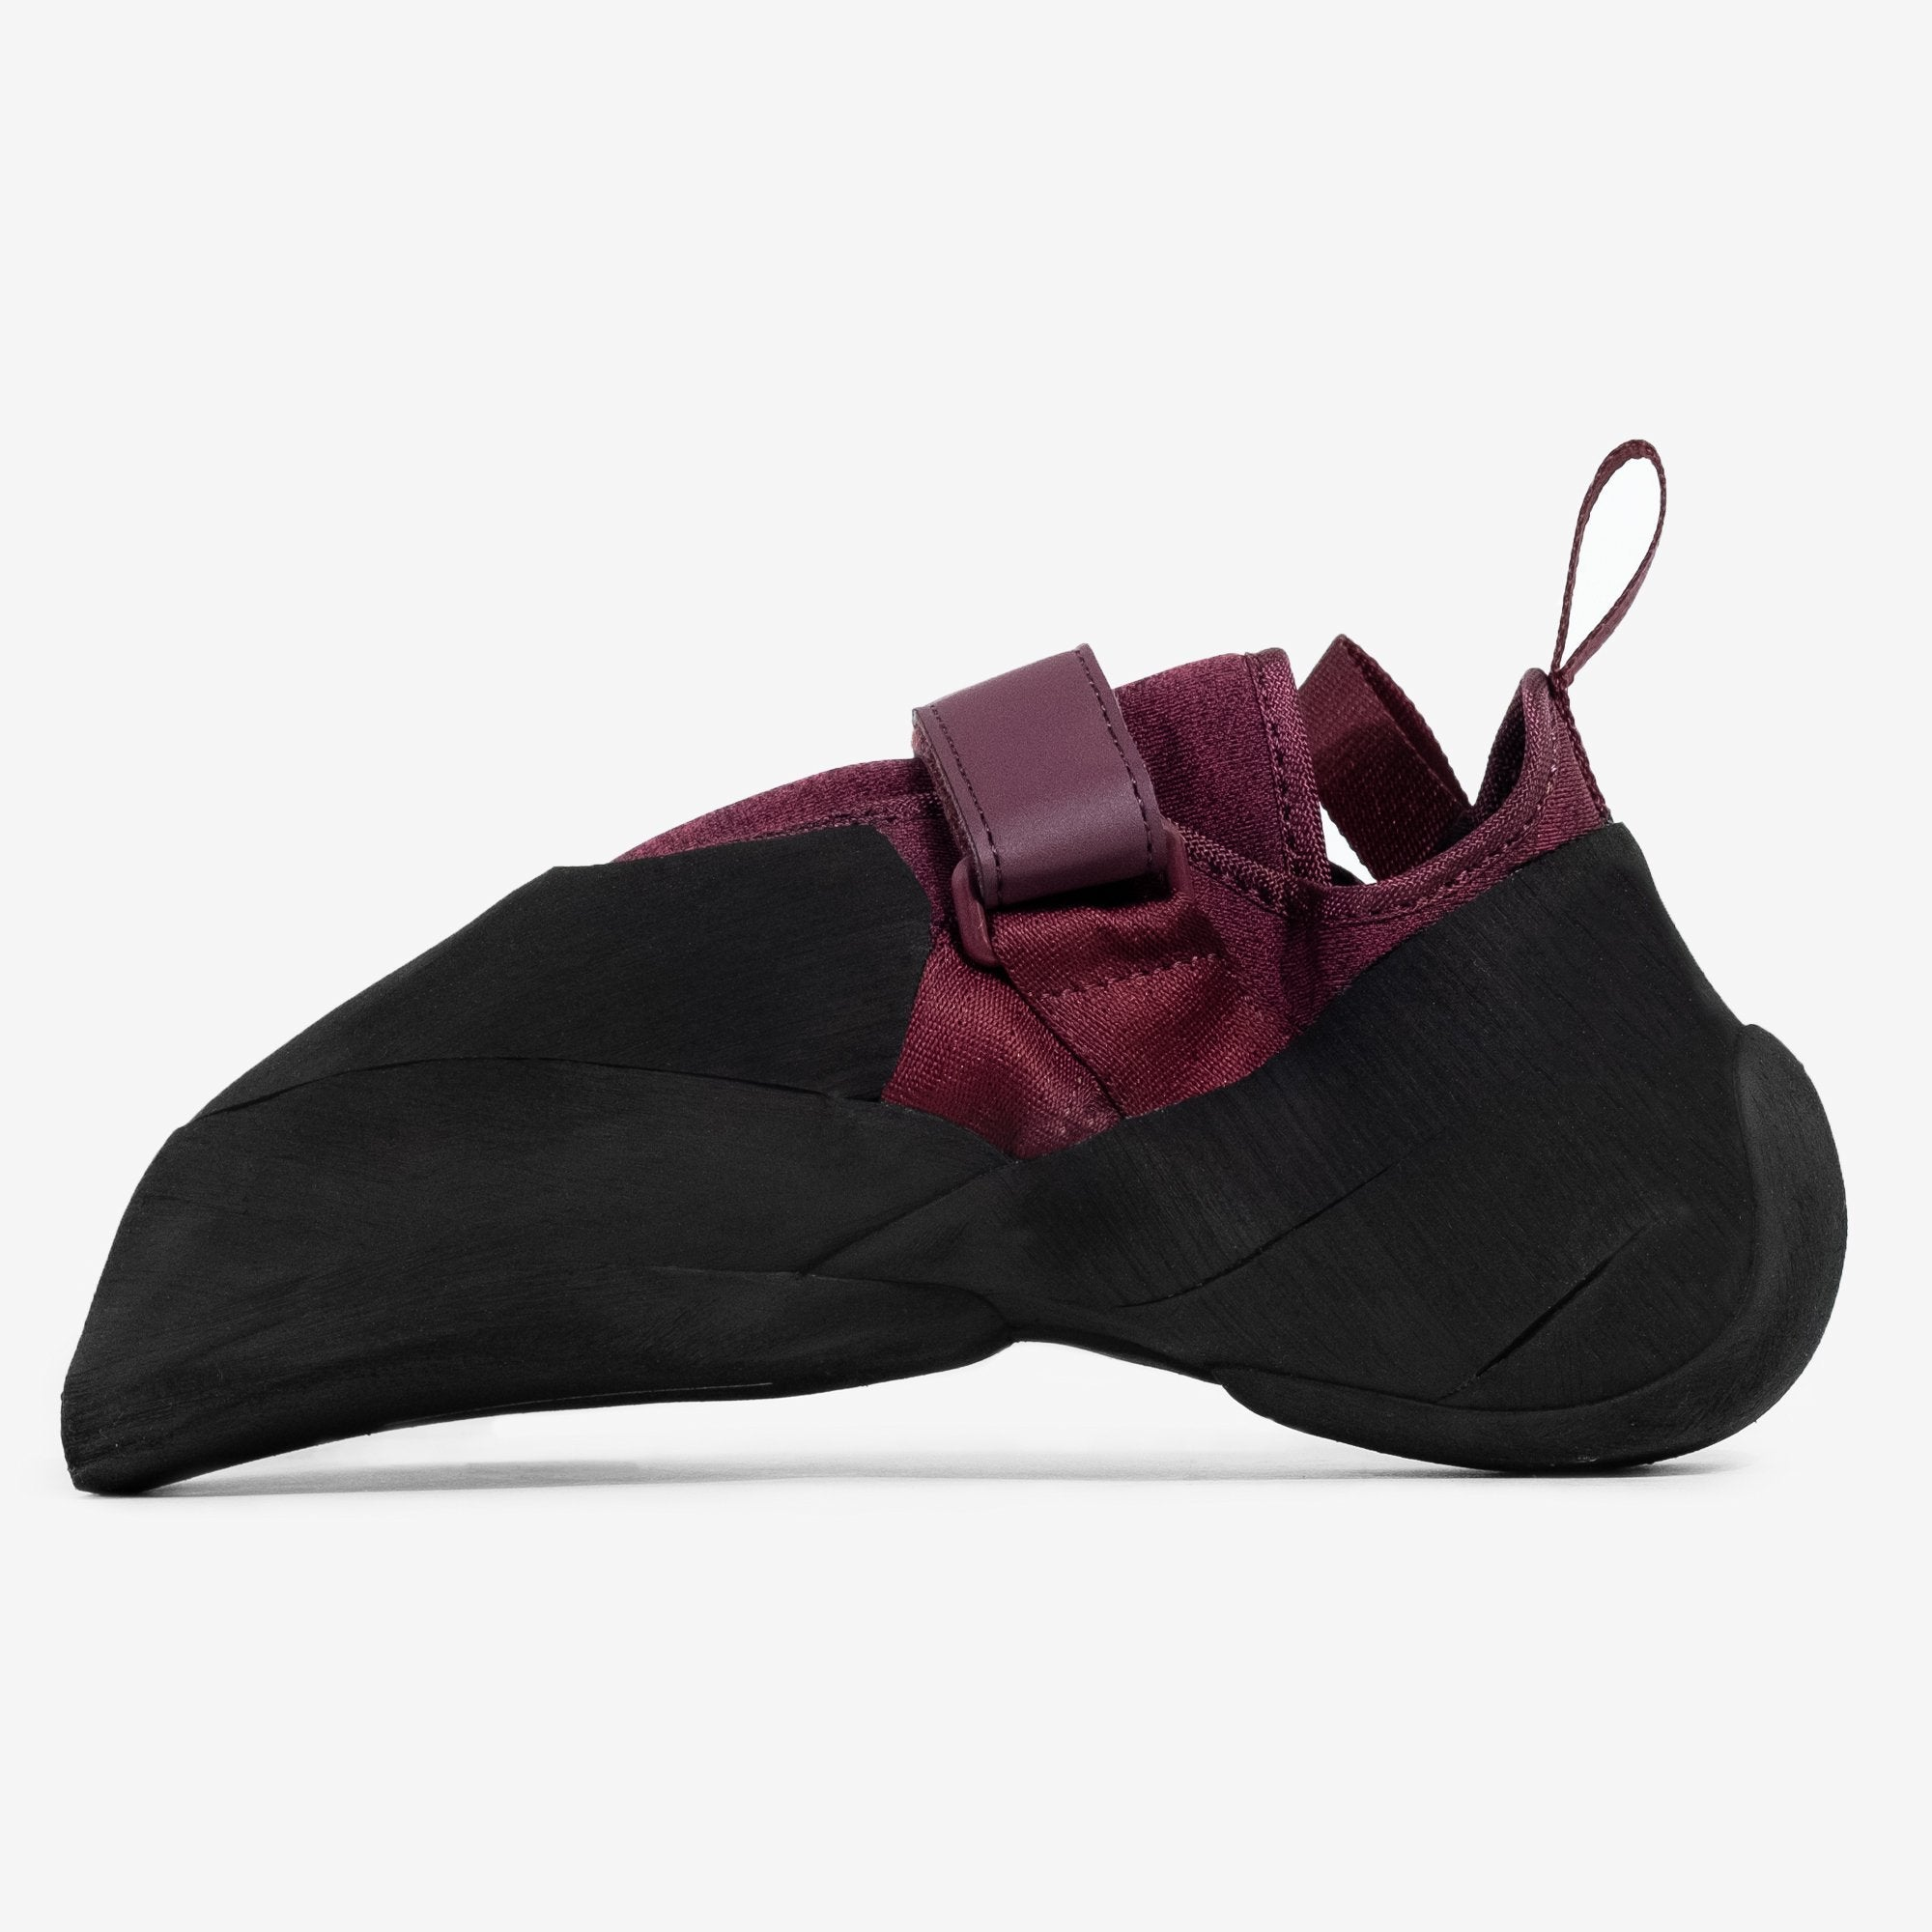 So iLL New Zero Pro Rock Climbing Shoe in Mineral/Maroon – Side View